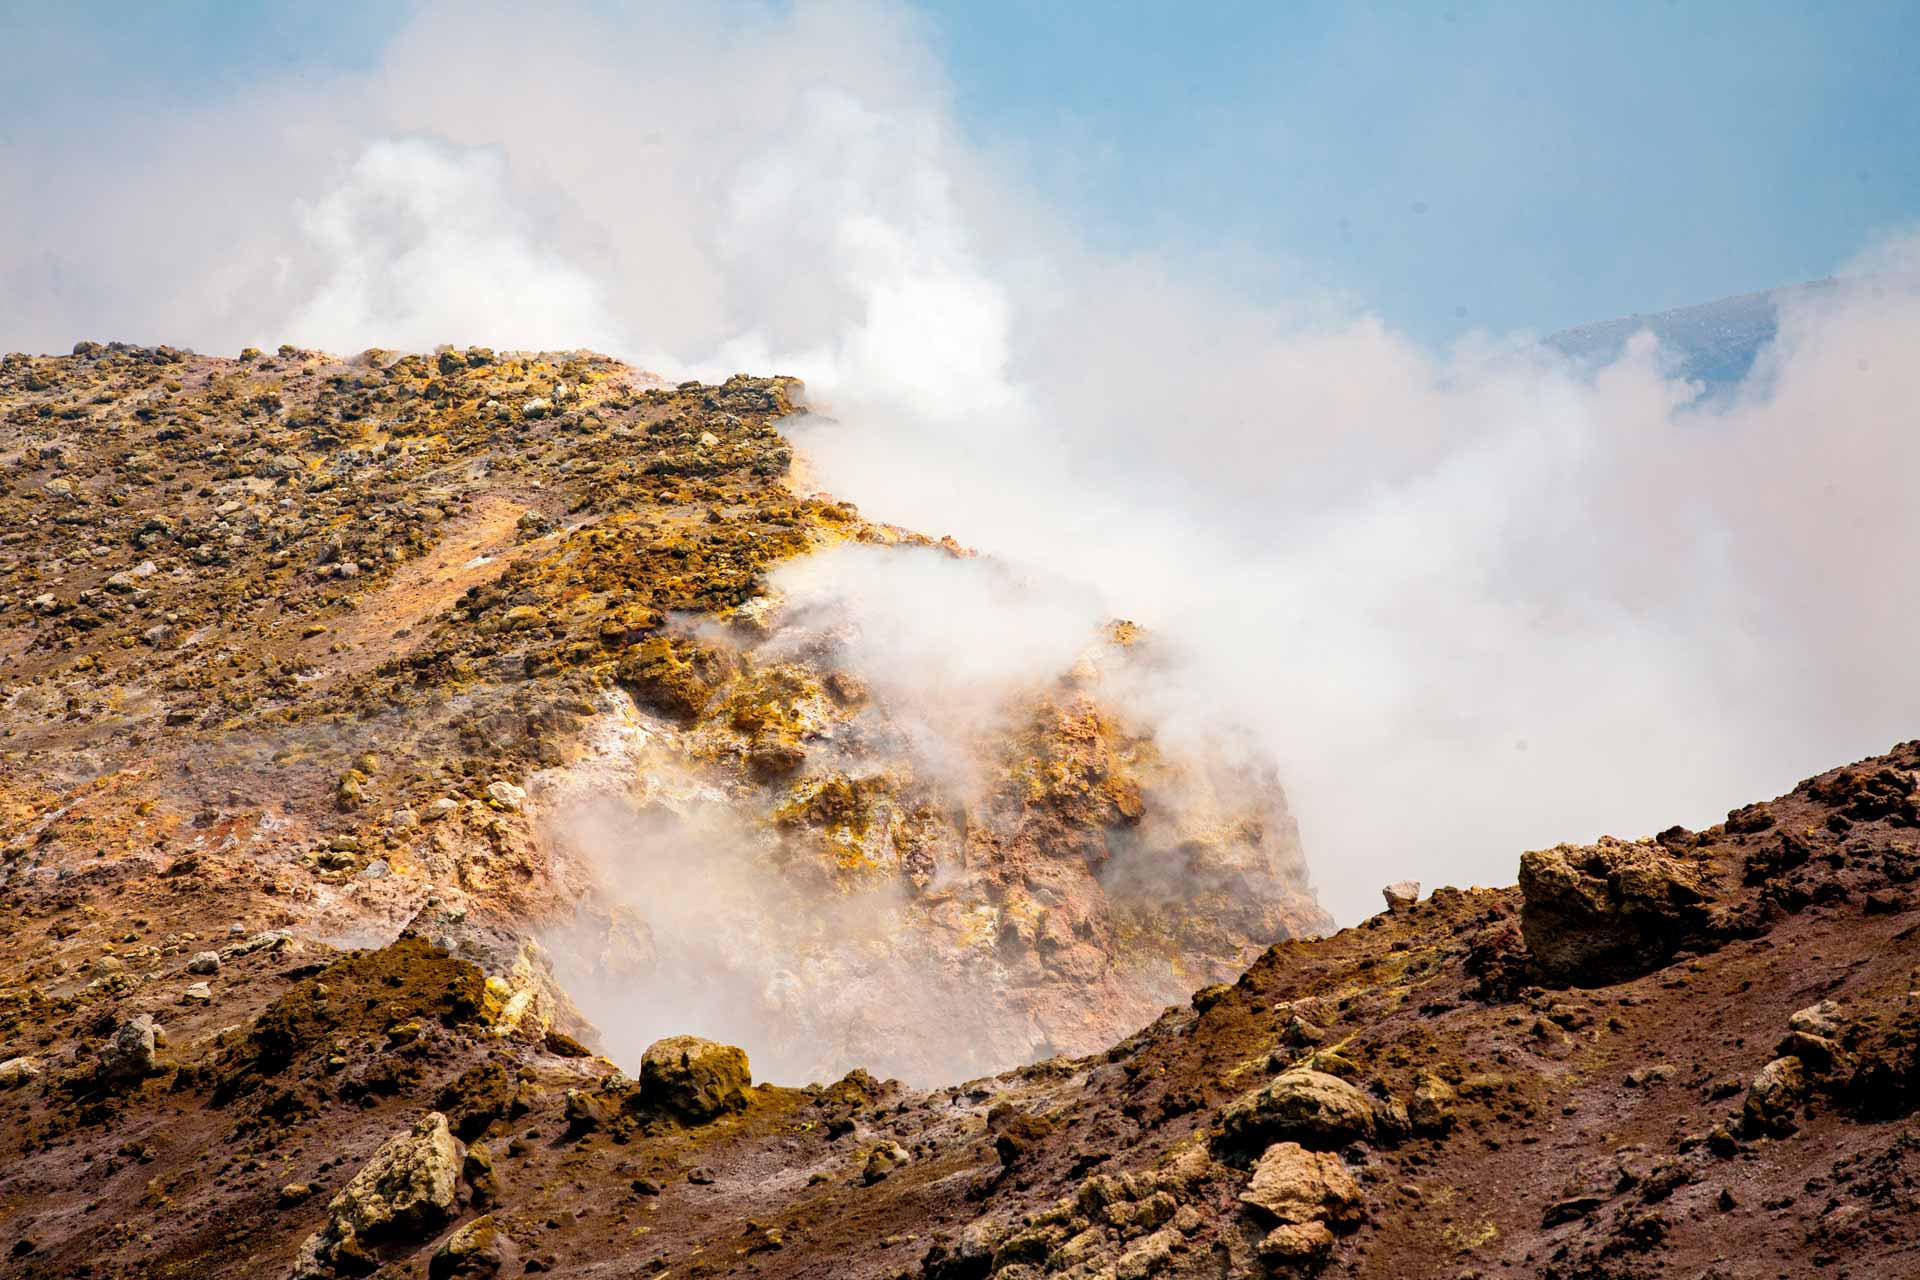 """Continuing in a threatening atmosphere of mephitic clouds, a frightening abyss opens on the west side: the """"New Bocca"""". Still active today, the crater is still growing larger. Its 300 meters wide shaft encloses many eruptive vents in its smoky depths. The fumes that come out millions of cubic meters from the crater chimney consist of water vapor, acids and gases such as hydrogen sulfide, carbon dioxide and hydrochloric acid and many other equally unbreathable and corrosive components."""